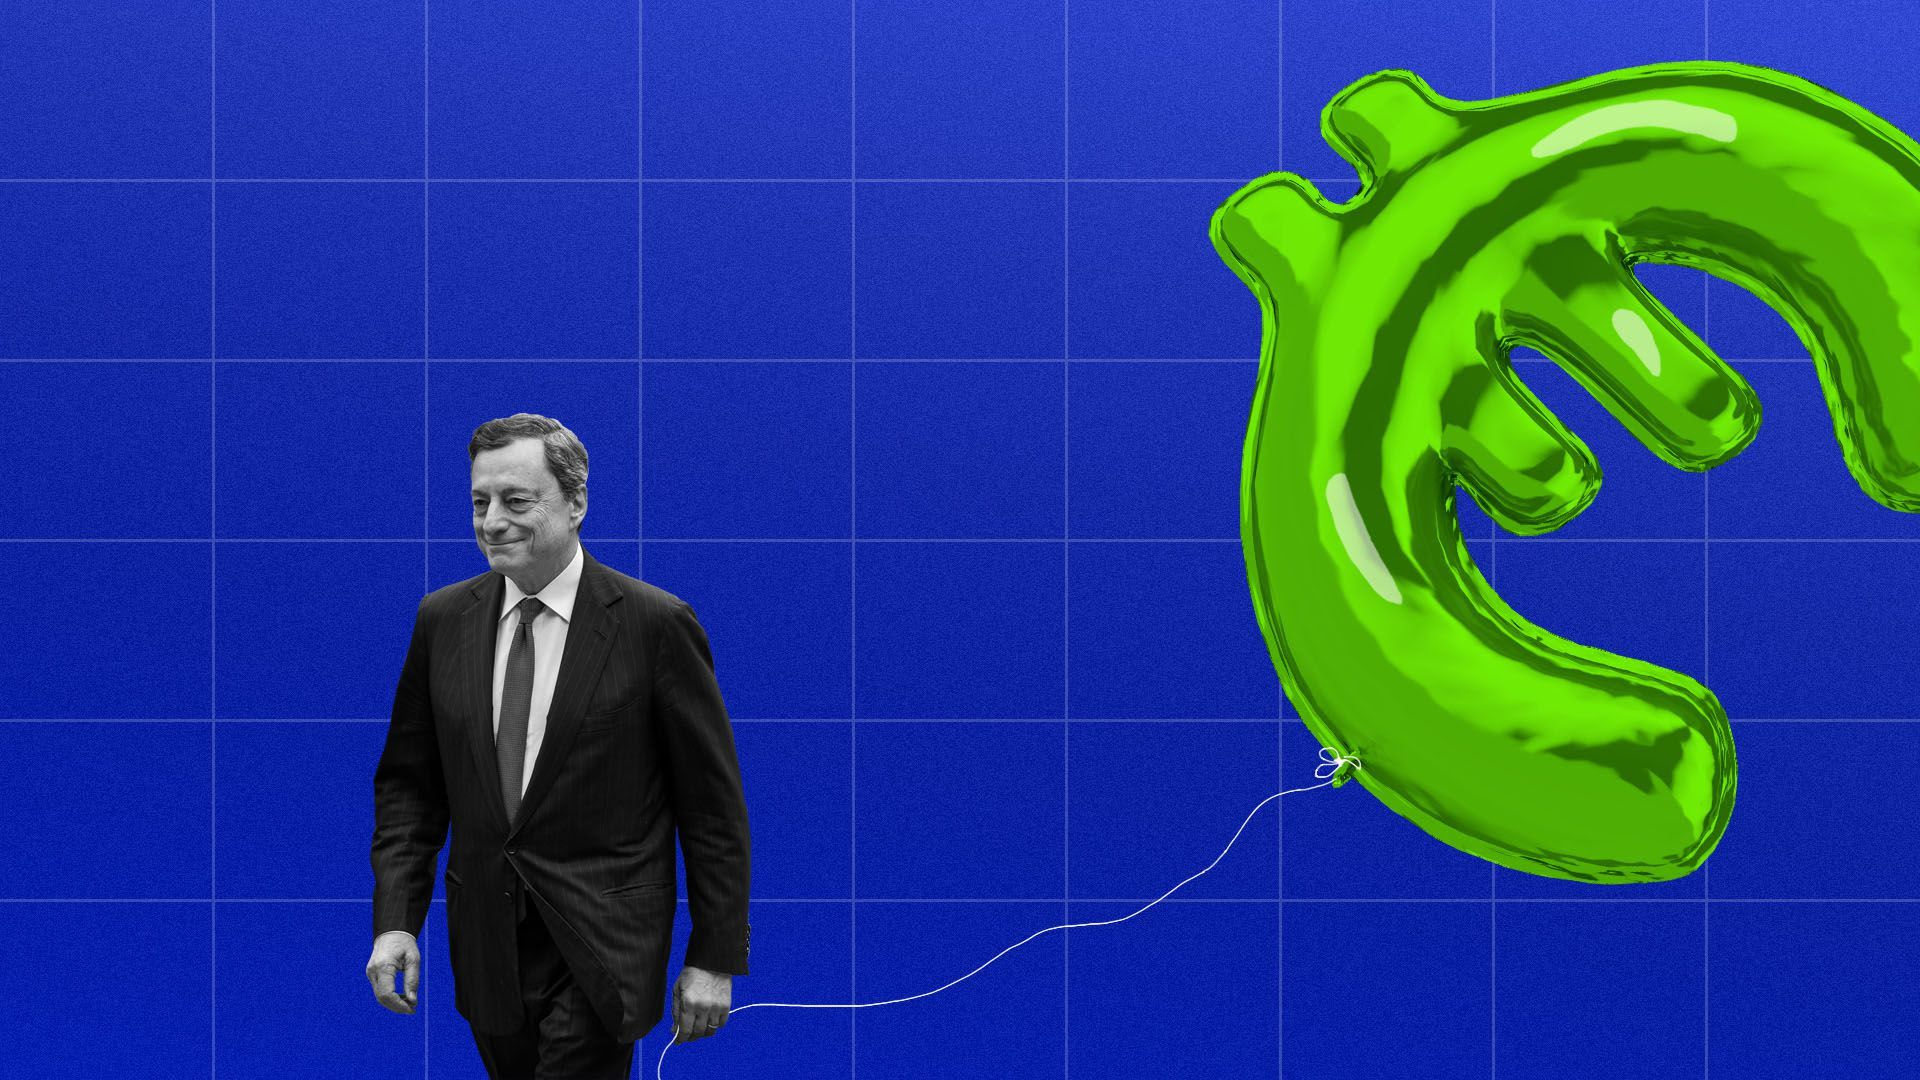 Mario Draghi holding a euro shaped balloon.